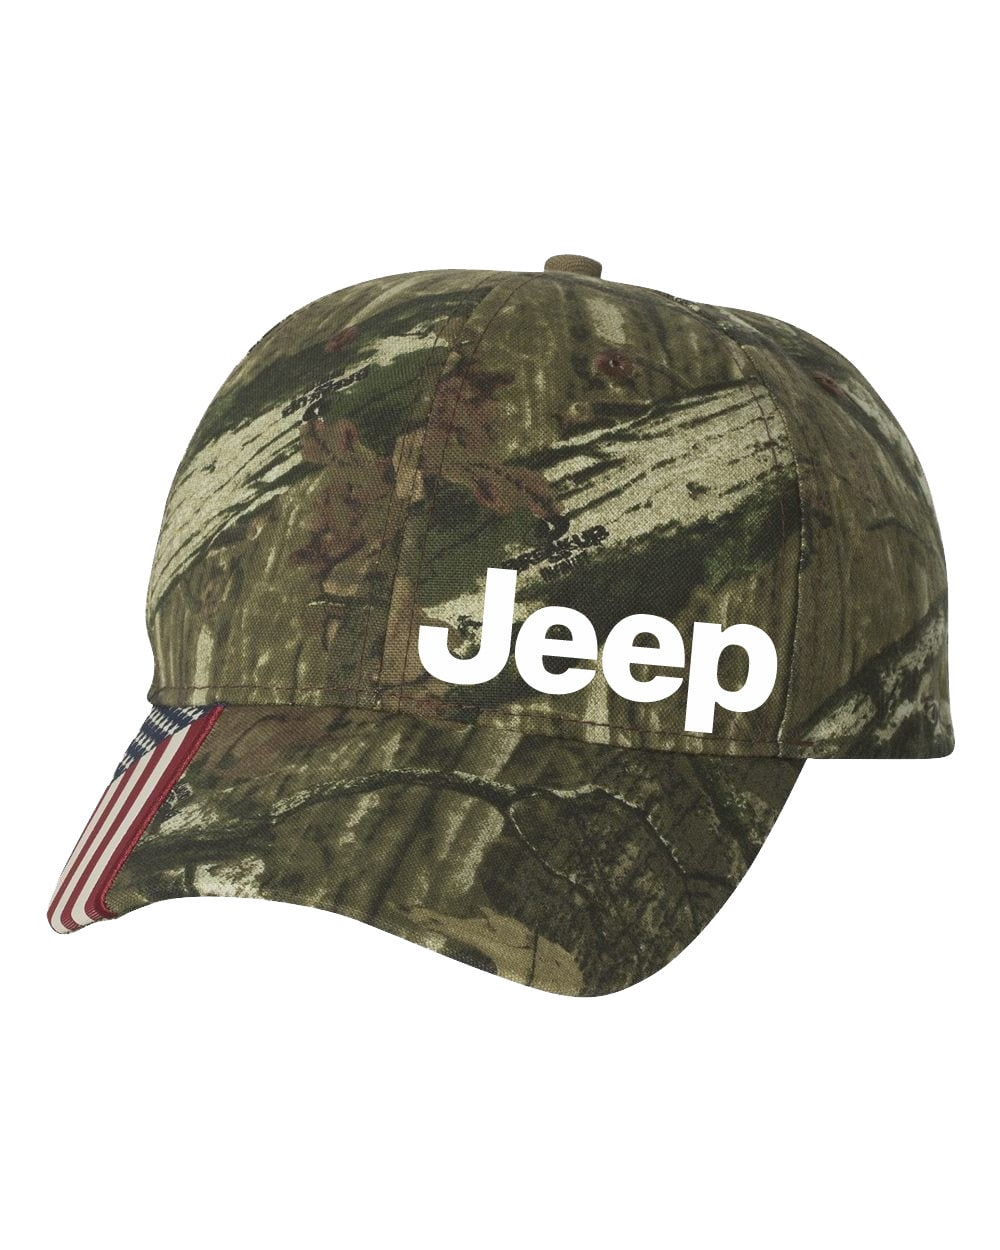 Jeep American Flag Camouflage Baseball Hat Cap By Customlgo